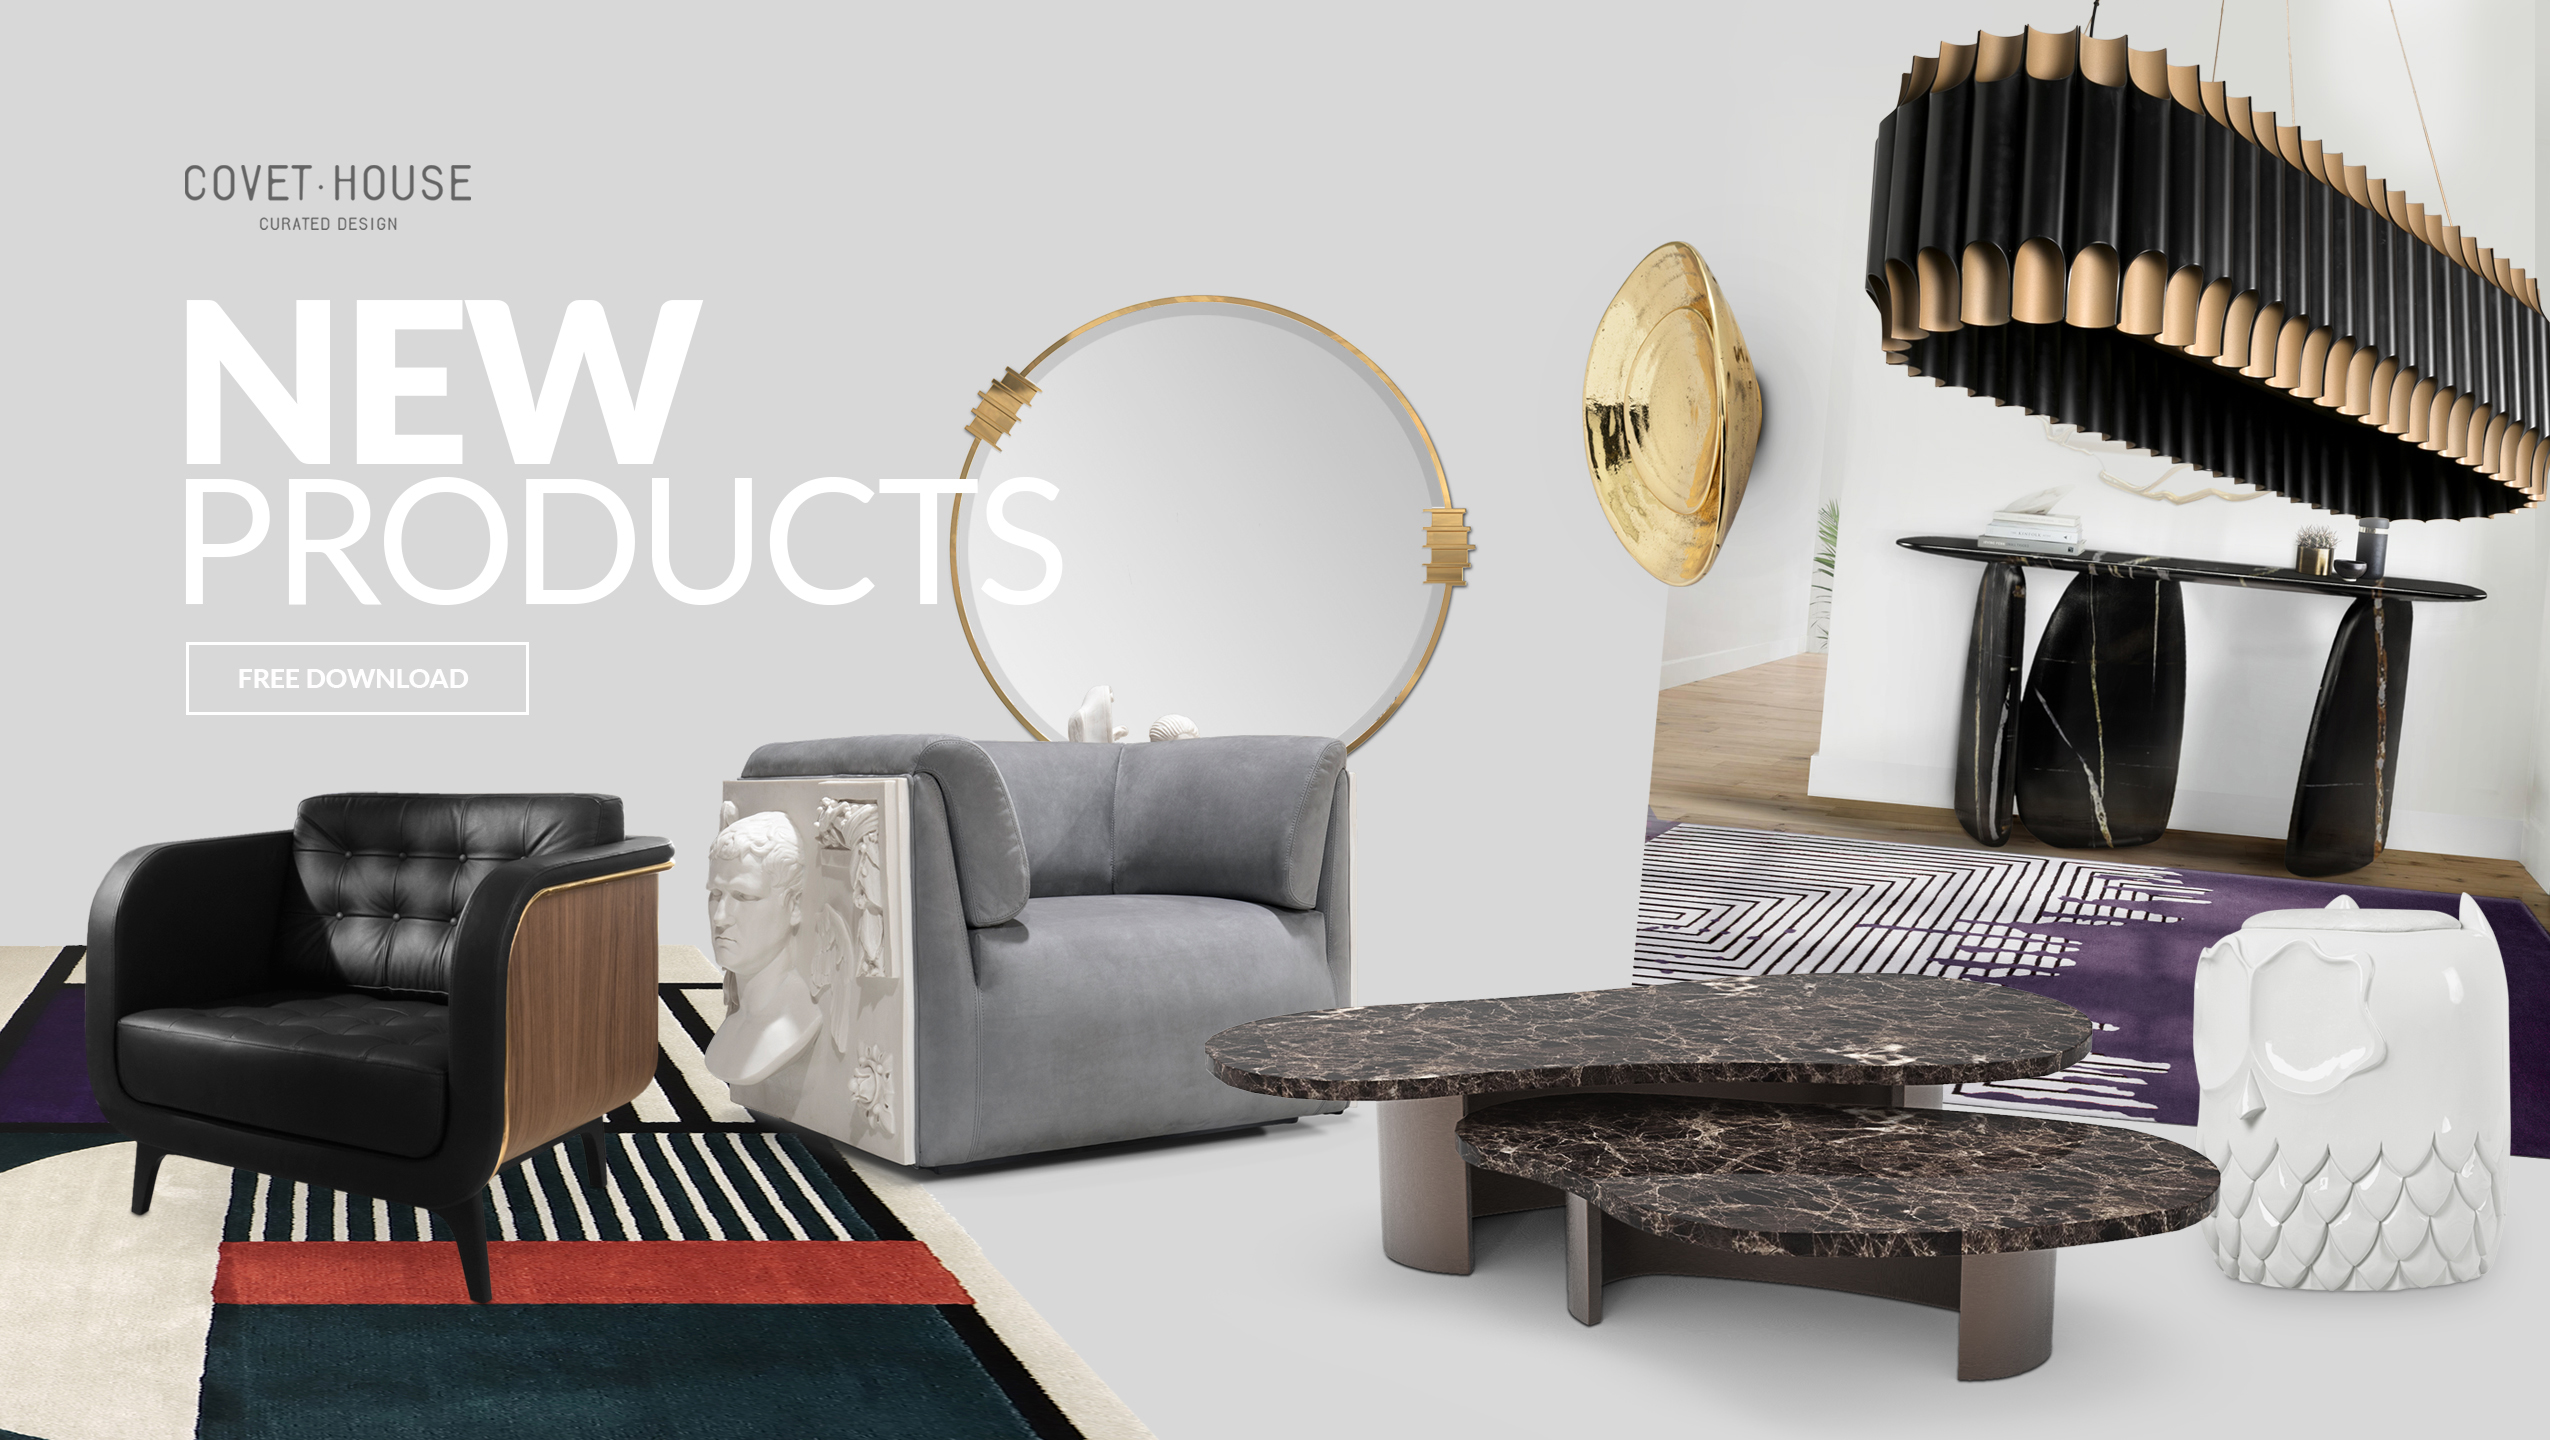 New Products 2020 maison et objet 2020 The Biggest Highlights From Maison Et Objet 2020 [Video] newproducts cta1